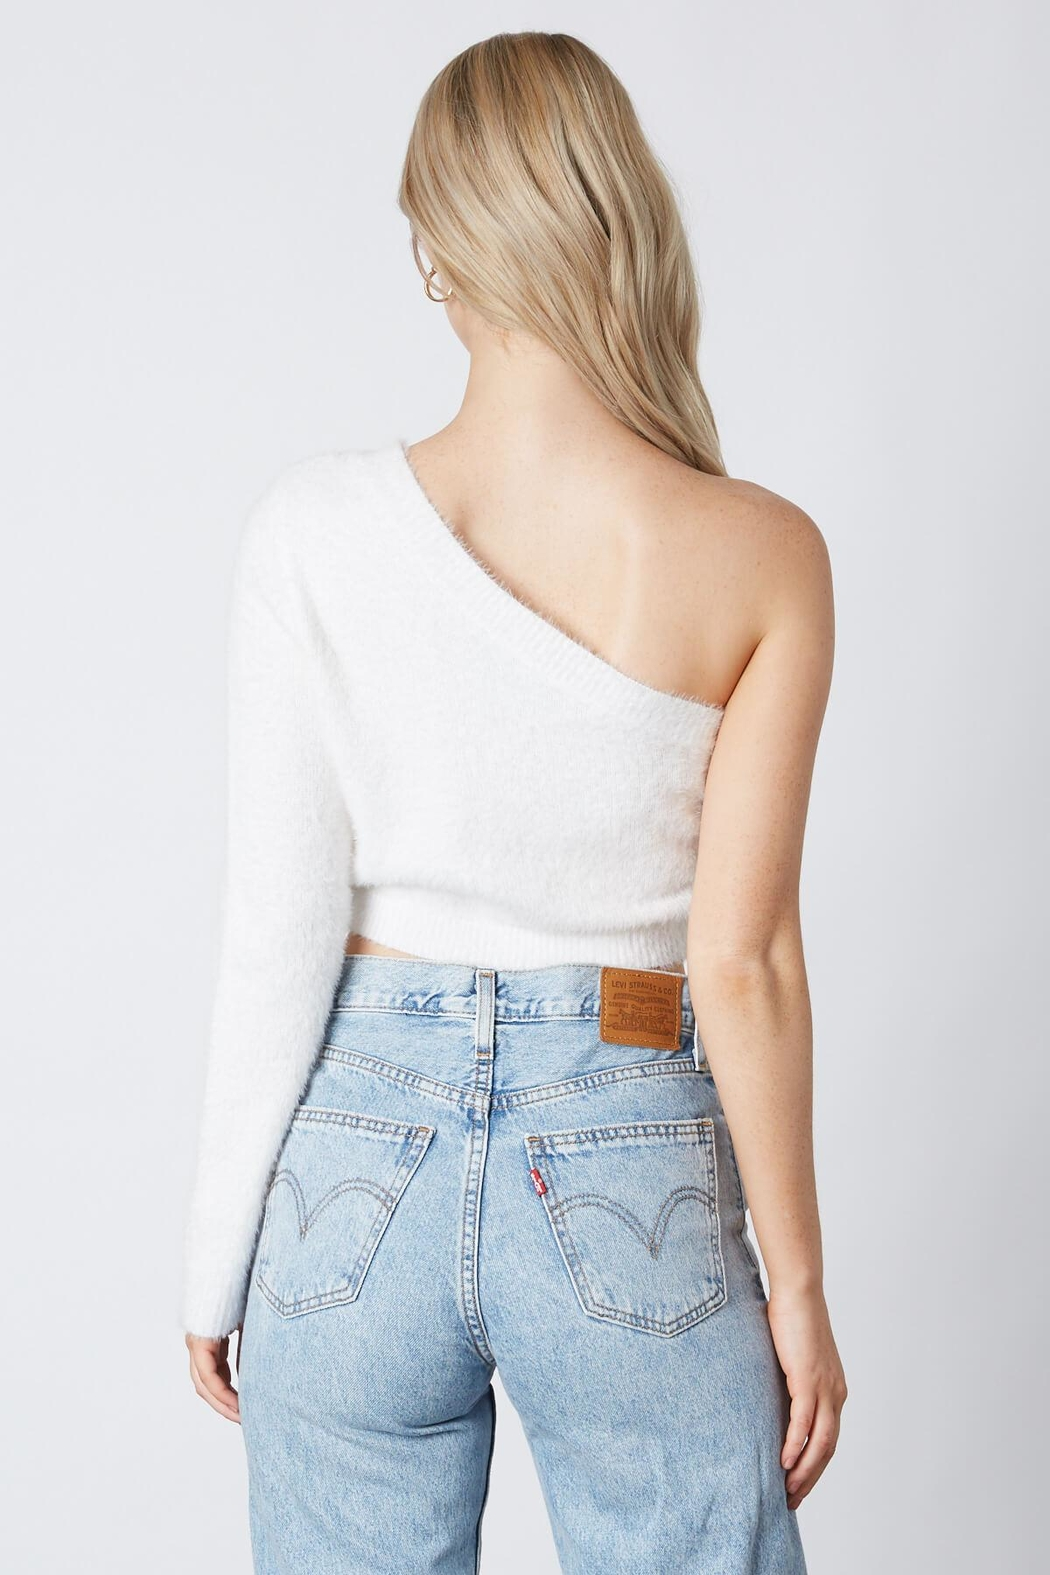 Cotton Candy LA One Shoulder Sweater - Front Full Image